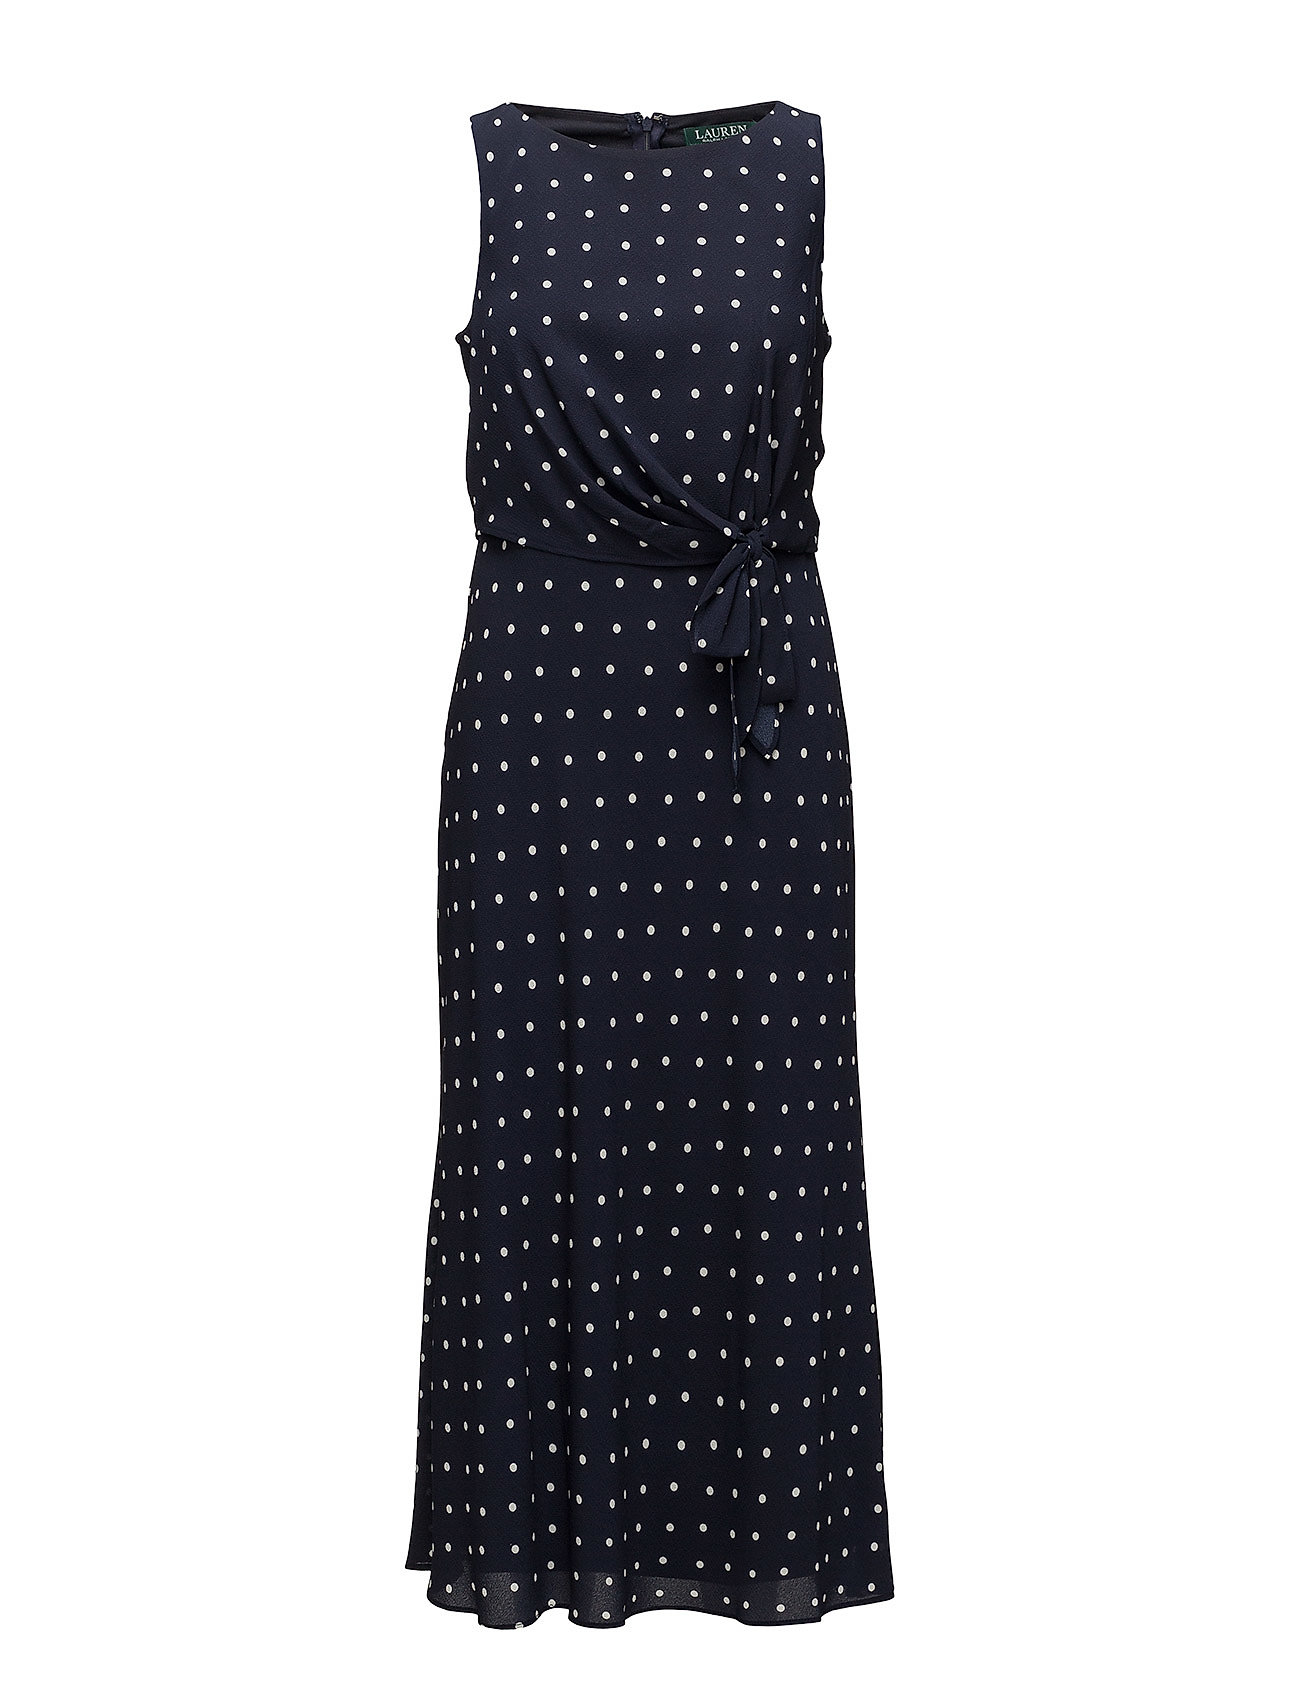 Lauren Ralph Lauren Polka-Dot Crepe Midi Dress - LH NAVY/COLONIAL